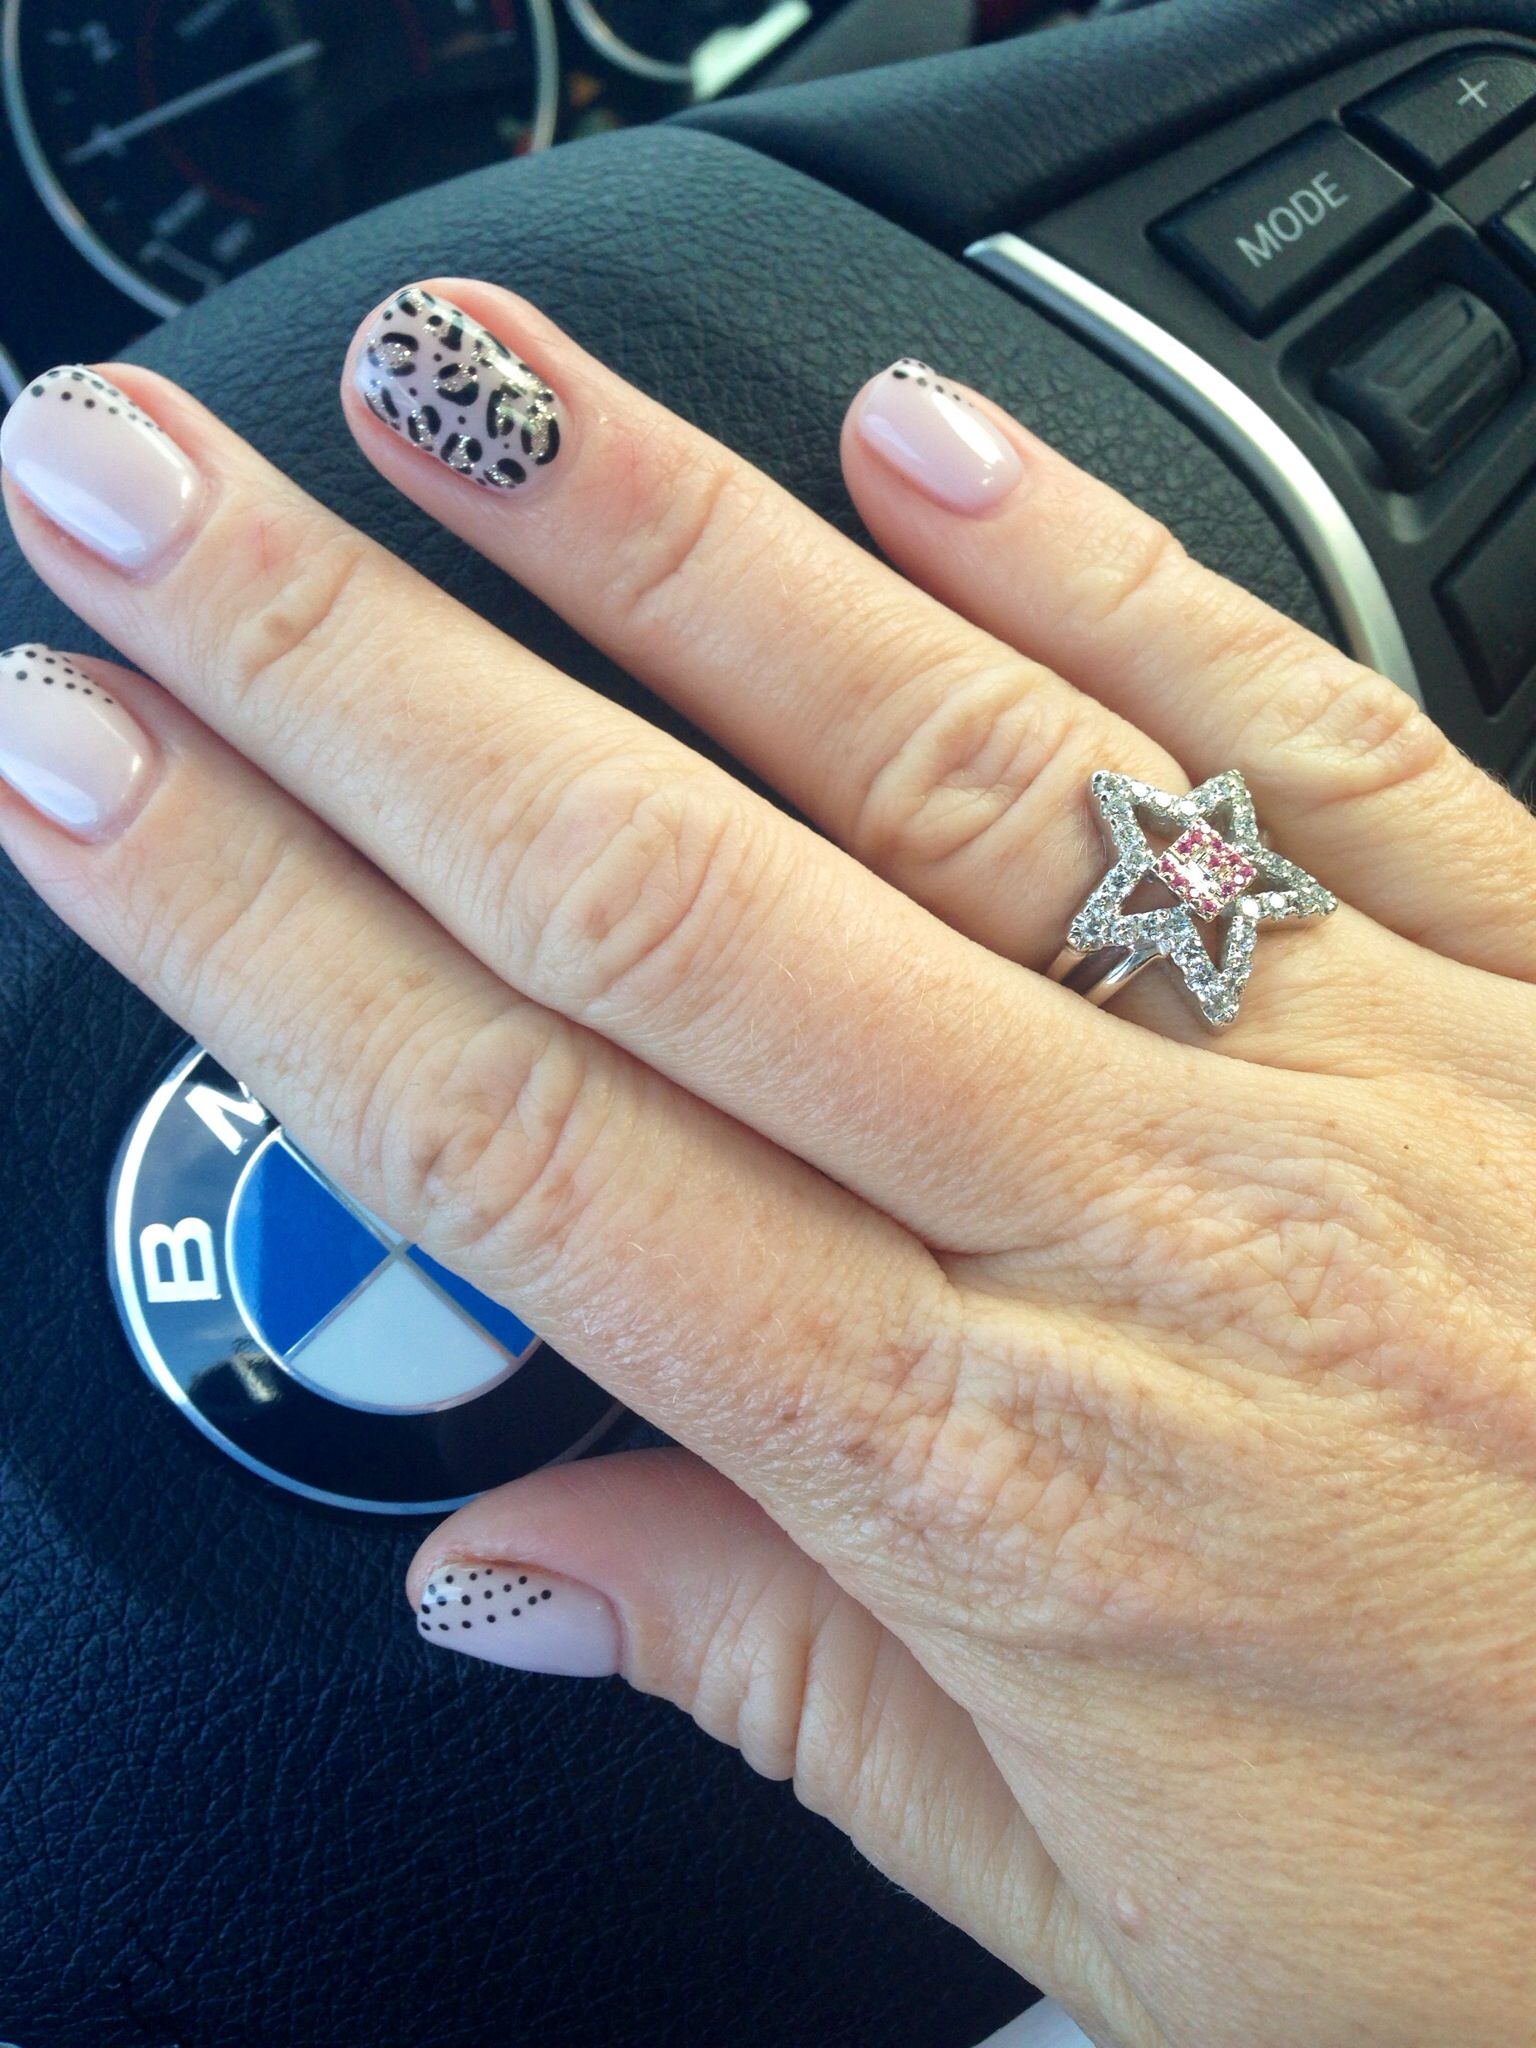 Cheetah and sparkle gel nail design | Nails | Pinterest | Sparkle ...